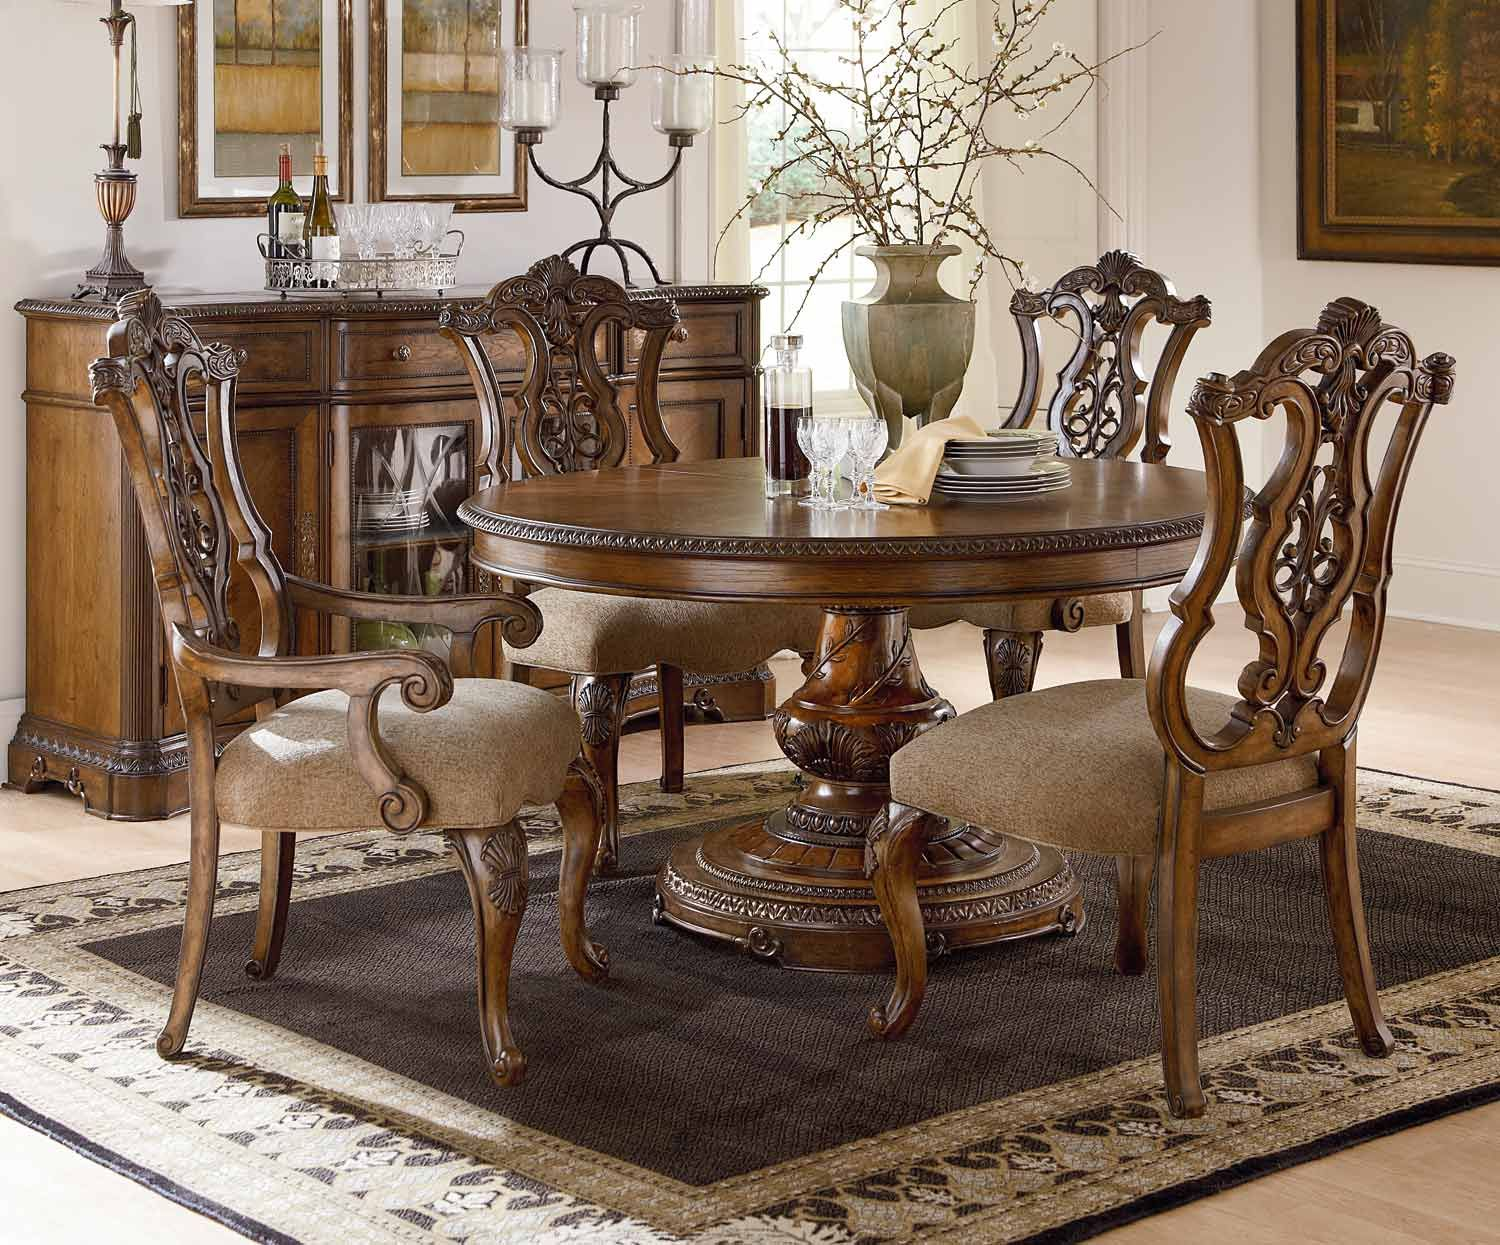 Legacy Classic Pemberleigh Round/Oval Dining Set with Pierced Chair - Brandy/Burnished Edges Legacy Classics Pemberleigh Round to Oval Table with Pierced Back Side Chairs and Arm chair  Features: Style: Gracious Living Wood: Poplar Solids, Cathedral Pecan Veneer & White Ash Burl Borders w/Primavera & Walnut Inlay Finish: Brandy w/Burnished Edges Hardware: Custom Designed Rings, Knobs & Escutcheons in Golden Amber Fabric Content: 100% Polyester (Doeskin), Cleaning Code: S